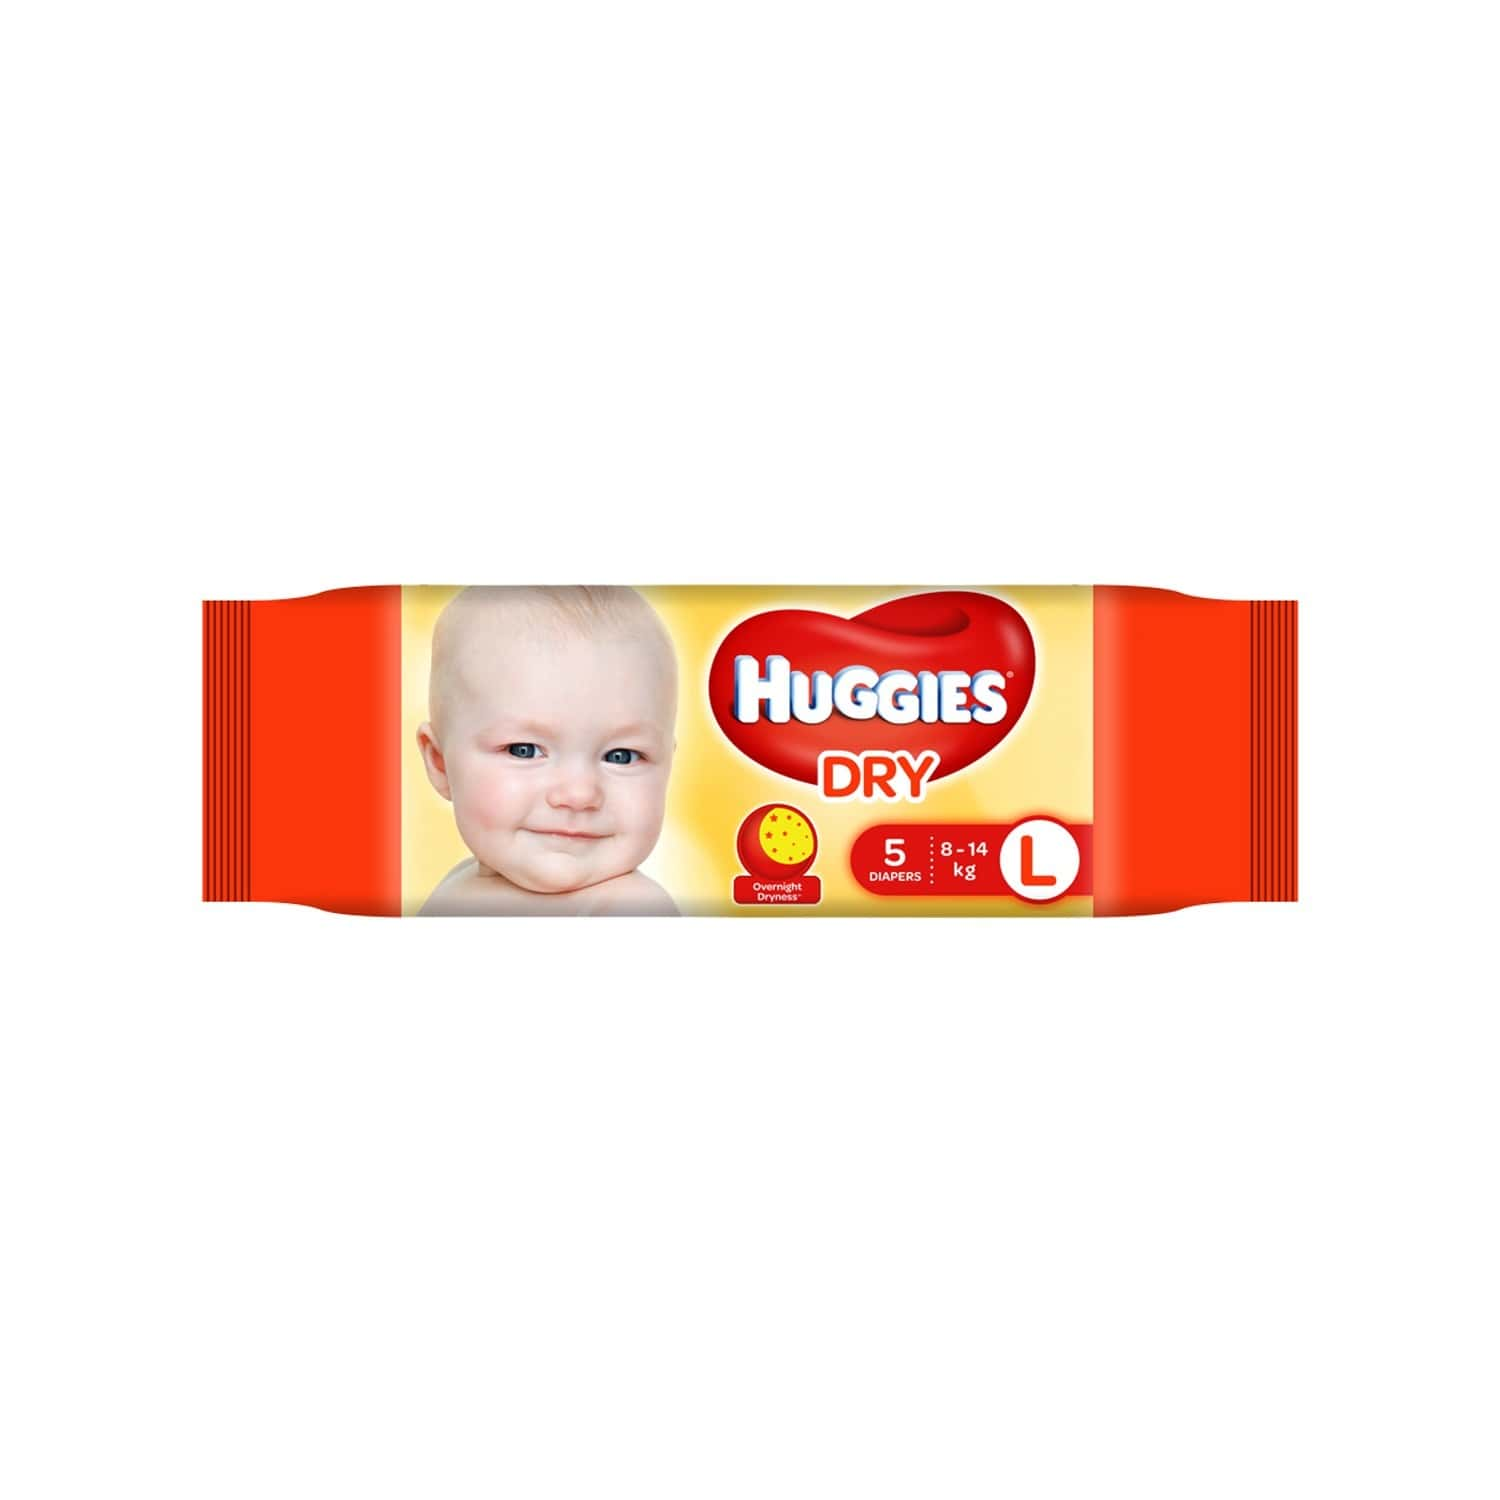 Huggies Dry Tape Diapers ( Large Size) - 5 Count